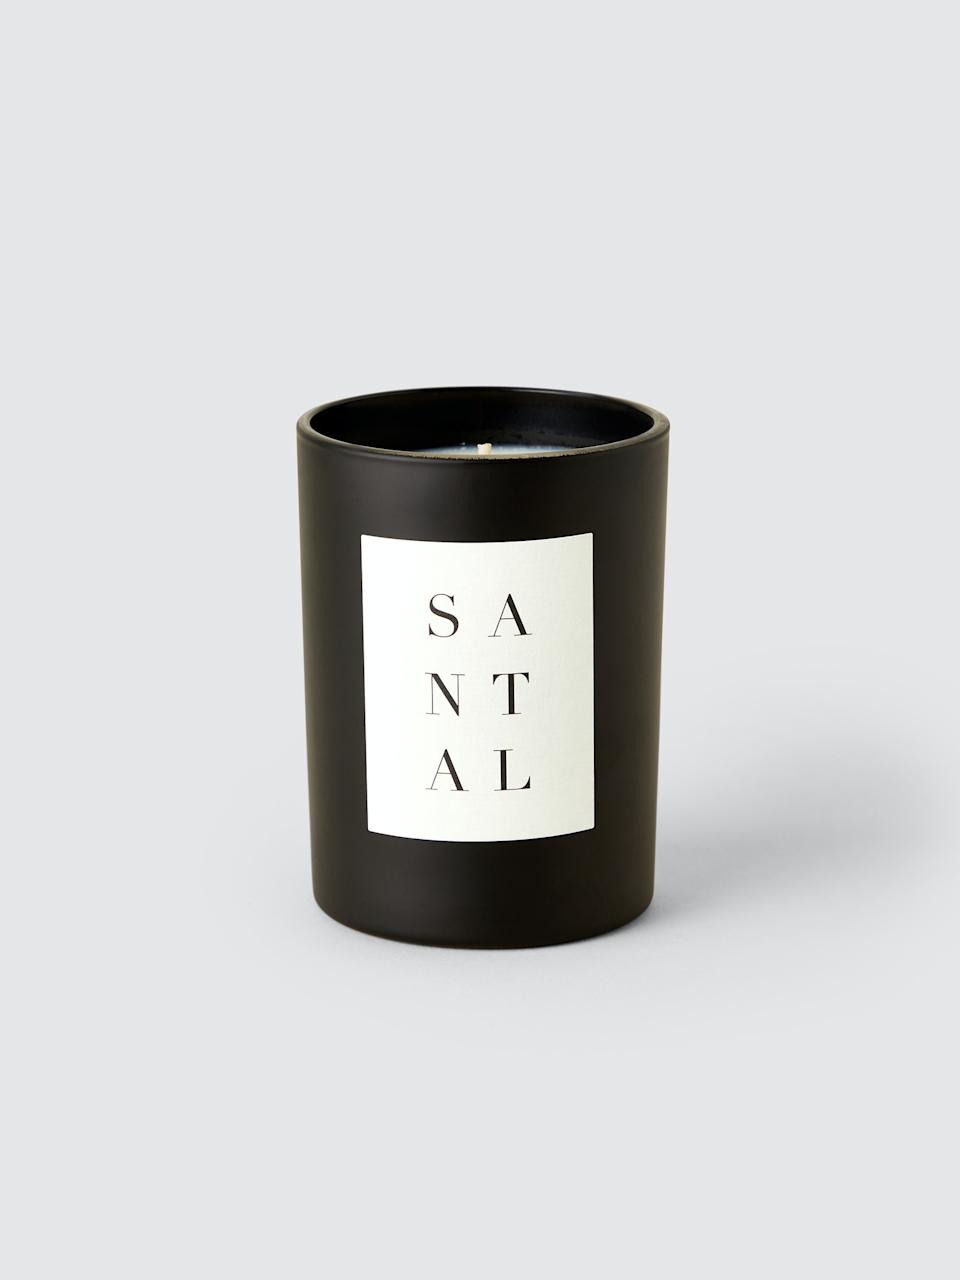 "<h2><a href=""https://www.verishop.com/product/p1640359591971?"" rel=""nofollow noopener"" target=""_blank"" data-ylk=""slk:Santal Noir Candle"" class=""link rapid-noclick-resp"">Santal Noir Candle</a></h2><br>With rich scents of cedar and pine, you'll be instantly transported to a cozy cabin retreat. ""I don't know how you layer the scents the way you do but this is enchanting. I love it. You have a lifelong customer,"" one pleased fan posted. <br><br><strong>Brooklyn Candle Studio</strong> Santal Noir Candle, $, available at <a href=""https://go.skimresources.com/?id=30283X879131&url=https%3A%2F%2Fwww.verishop.com%2Fproduct%2Fp1640359591971%3F"" rel=""nofollow noopener"" target=""_blank"" data-ylk=""slk:Verishop"" class=""link rapid-noclick-resp"">Verishop</a>"